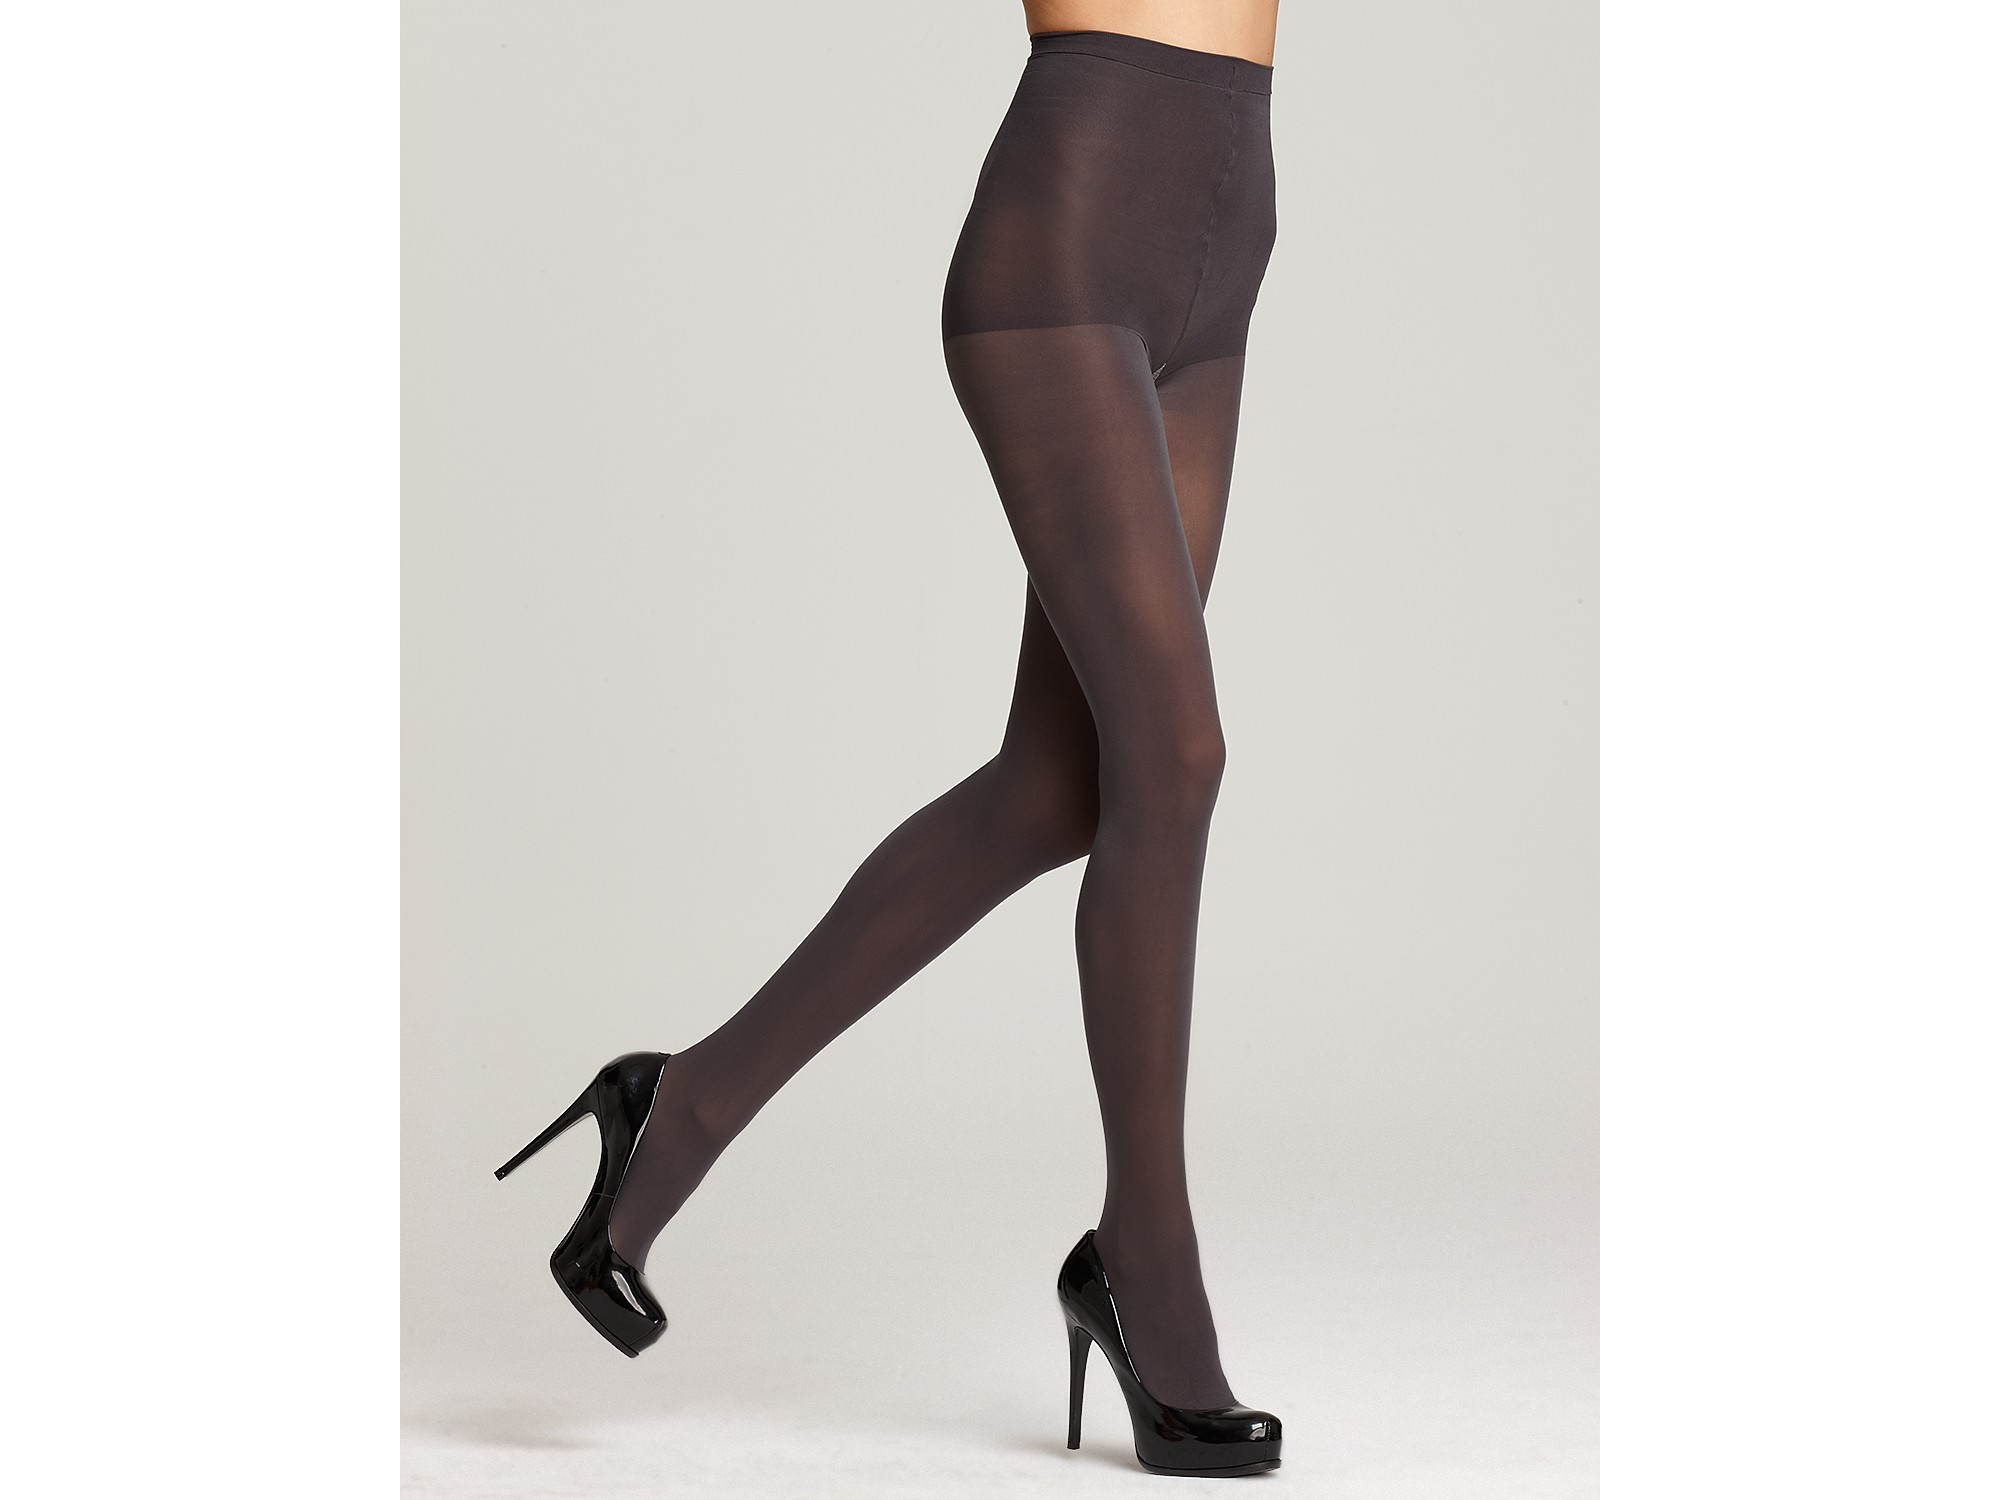 fb2796e64a9 DKNY Hosiery Basic Opaque Coverage Control Top Tights in Gray - Lyst